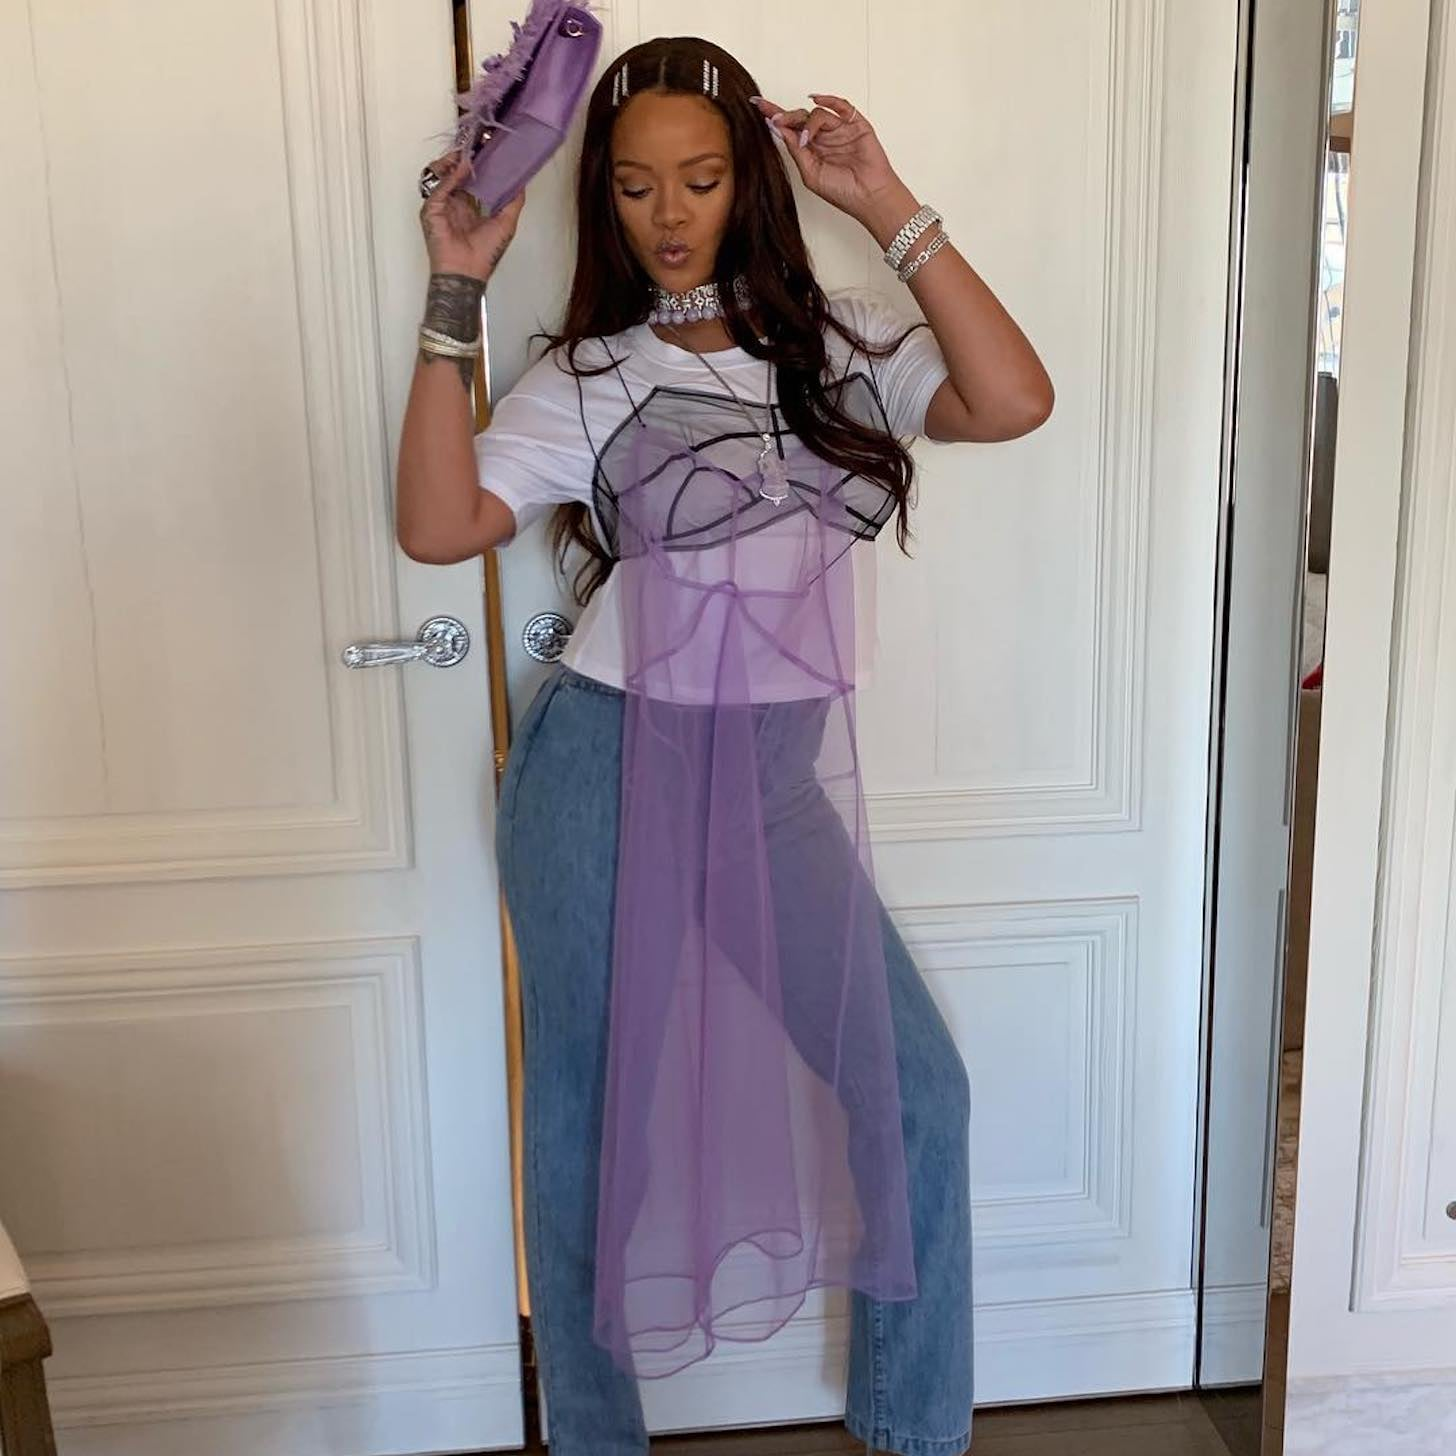 e3e39ebc53 ALDO Montesegale Embellished Perspex Clear Heeled Sandals | Rihanna Wearing  Purple Dress Over Jeans on Instagram | POPSUGAR Fashion Photo 4